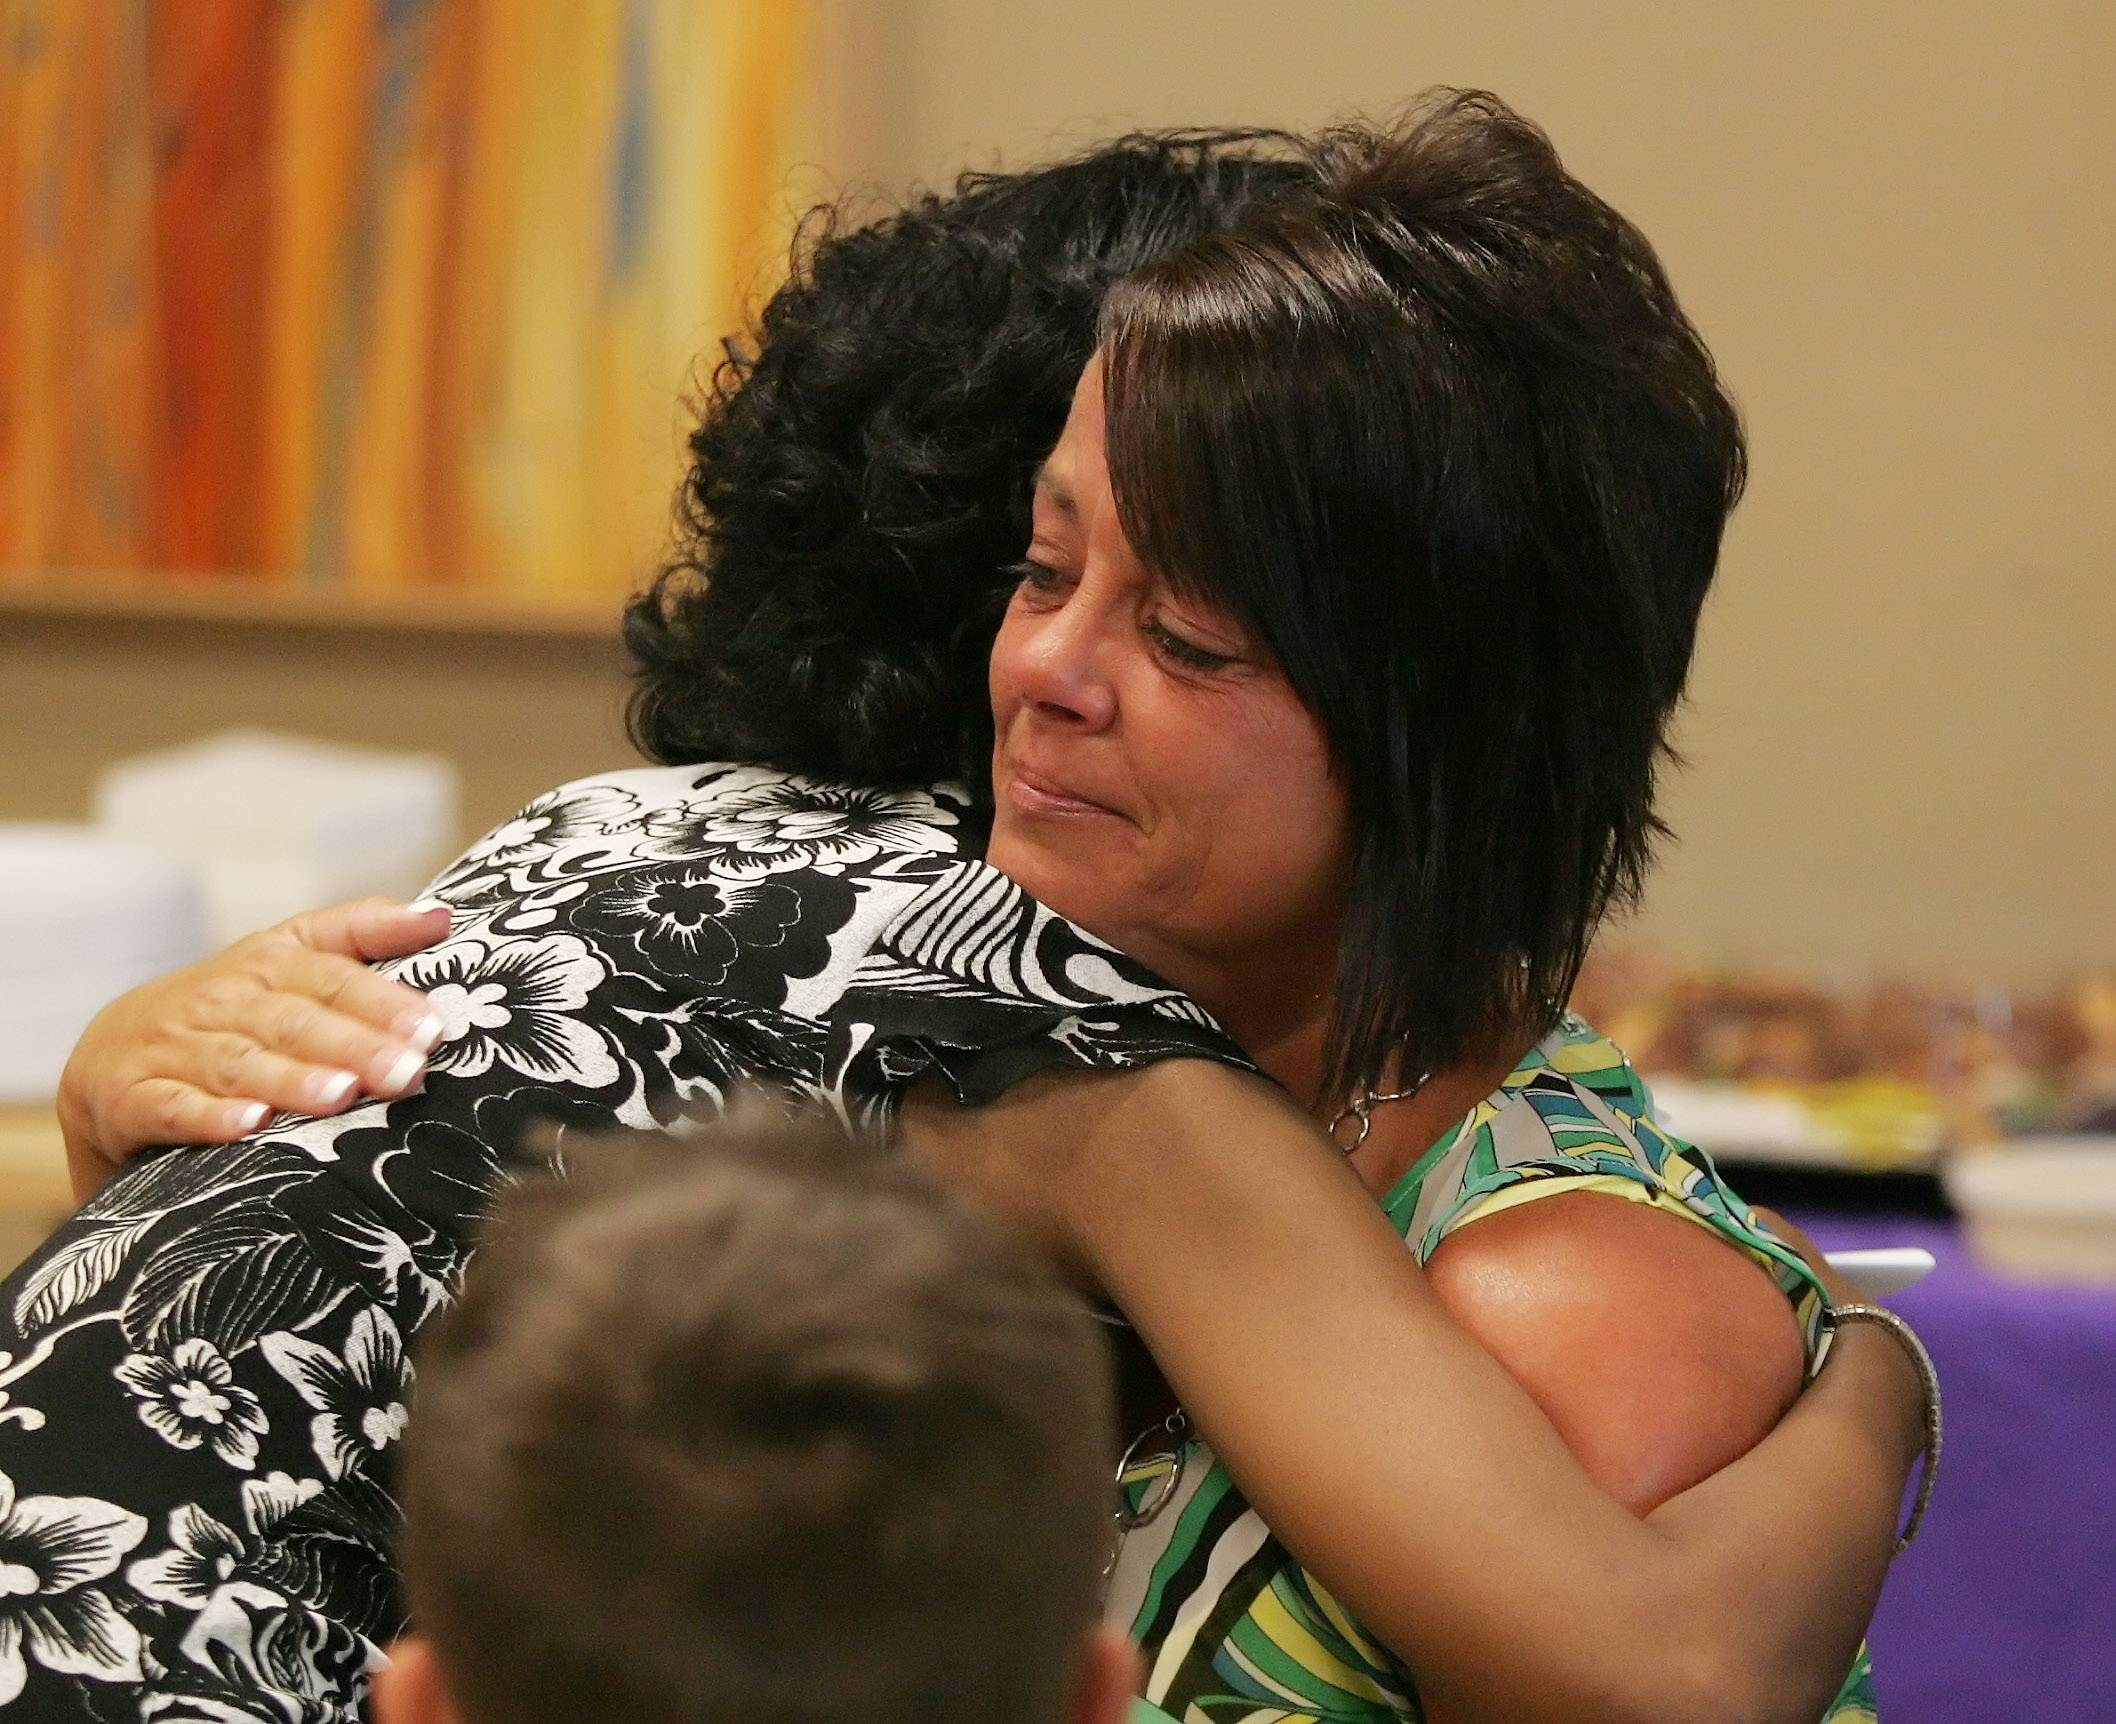 Heart transplant patient, Melody McIntosh, left, hugs Kelly Swart, mother of Ashley Swartwho donated her heart, during a meeting at Advocate Condell Medical Center in Libertyville on Monday. Swart was a 20-year-old Purdue student who died suddenly in 2013 donating several organs including the heart that saved McIntosh.